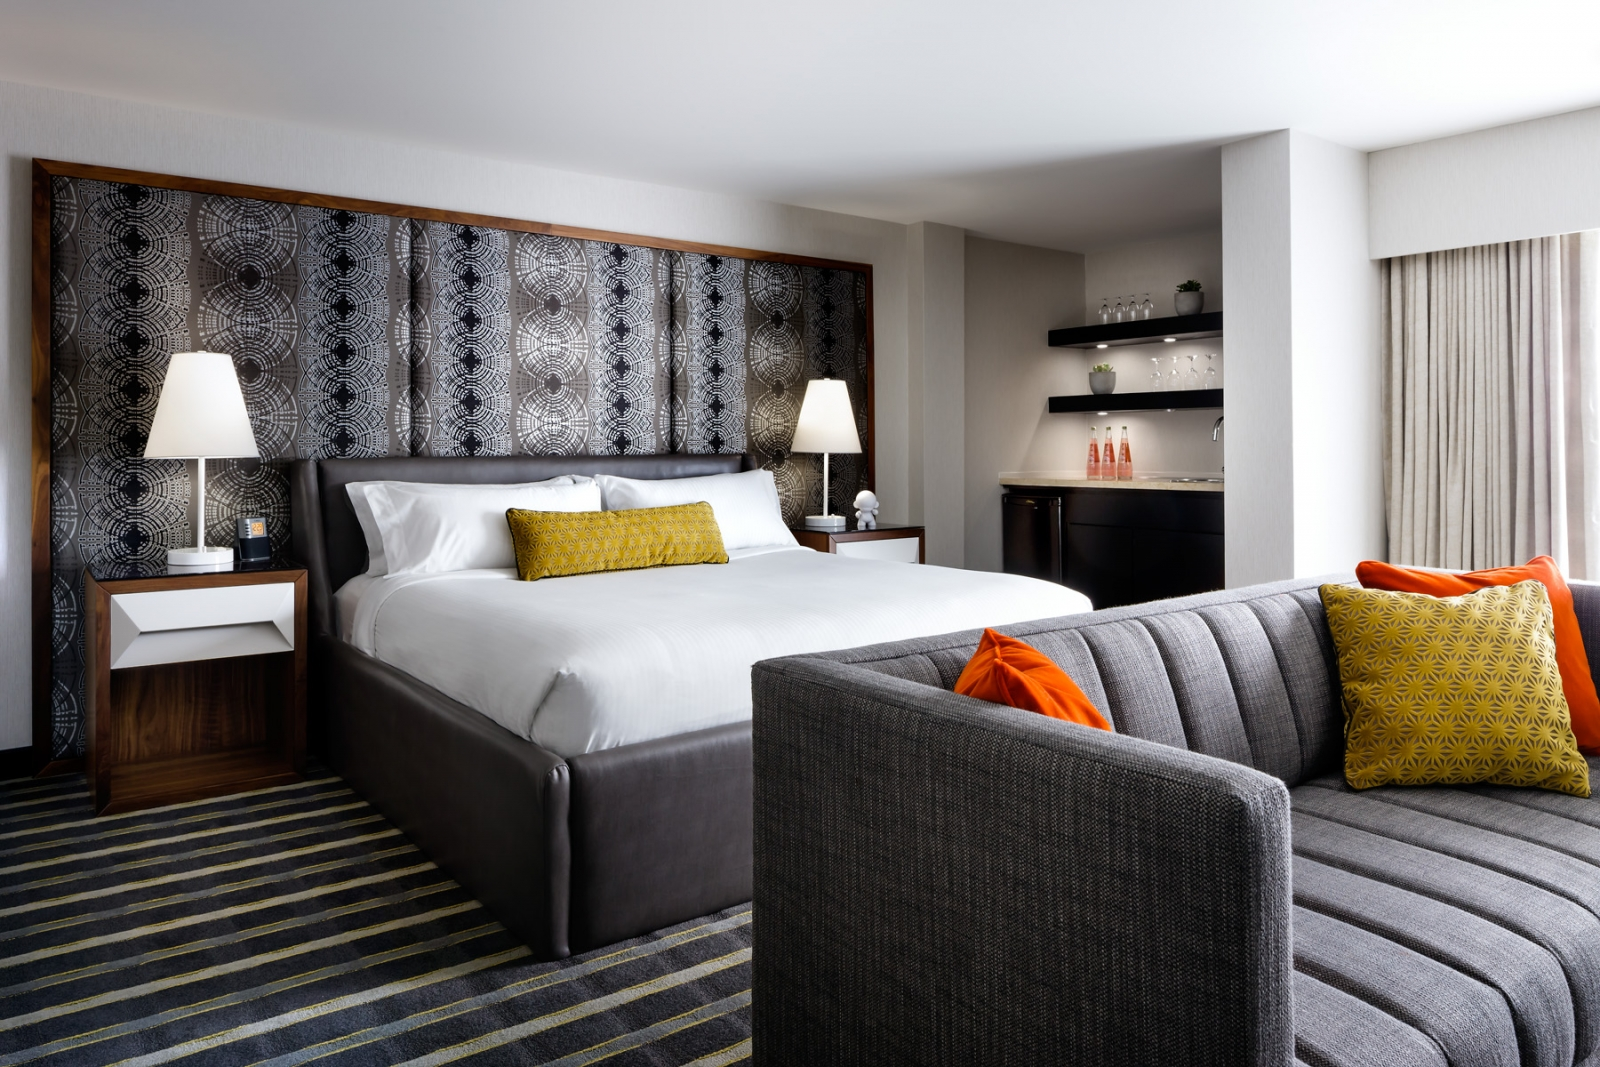 The hotel's guest rooms have been revamped with a cool, clean style that draws attention to quality pieces without distracting from the overall aesthetic.